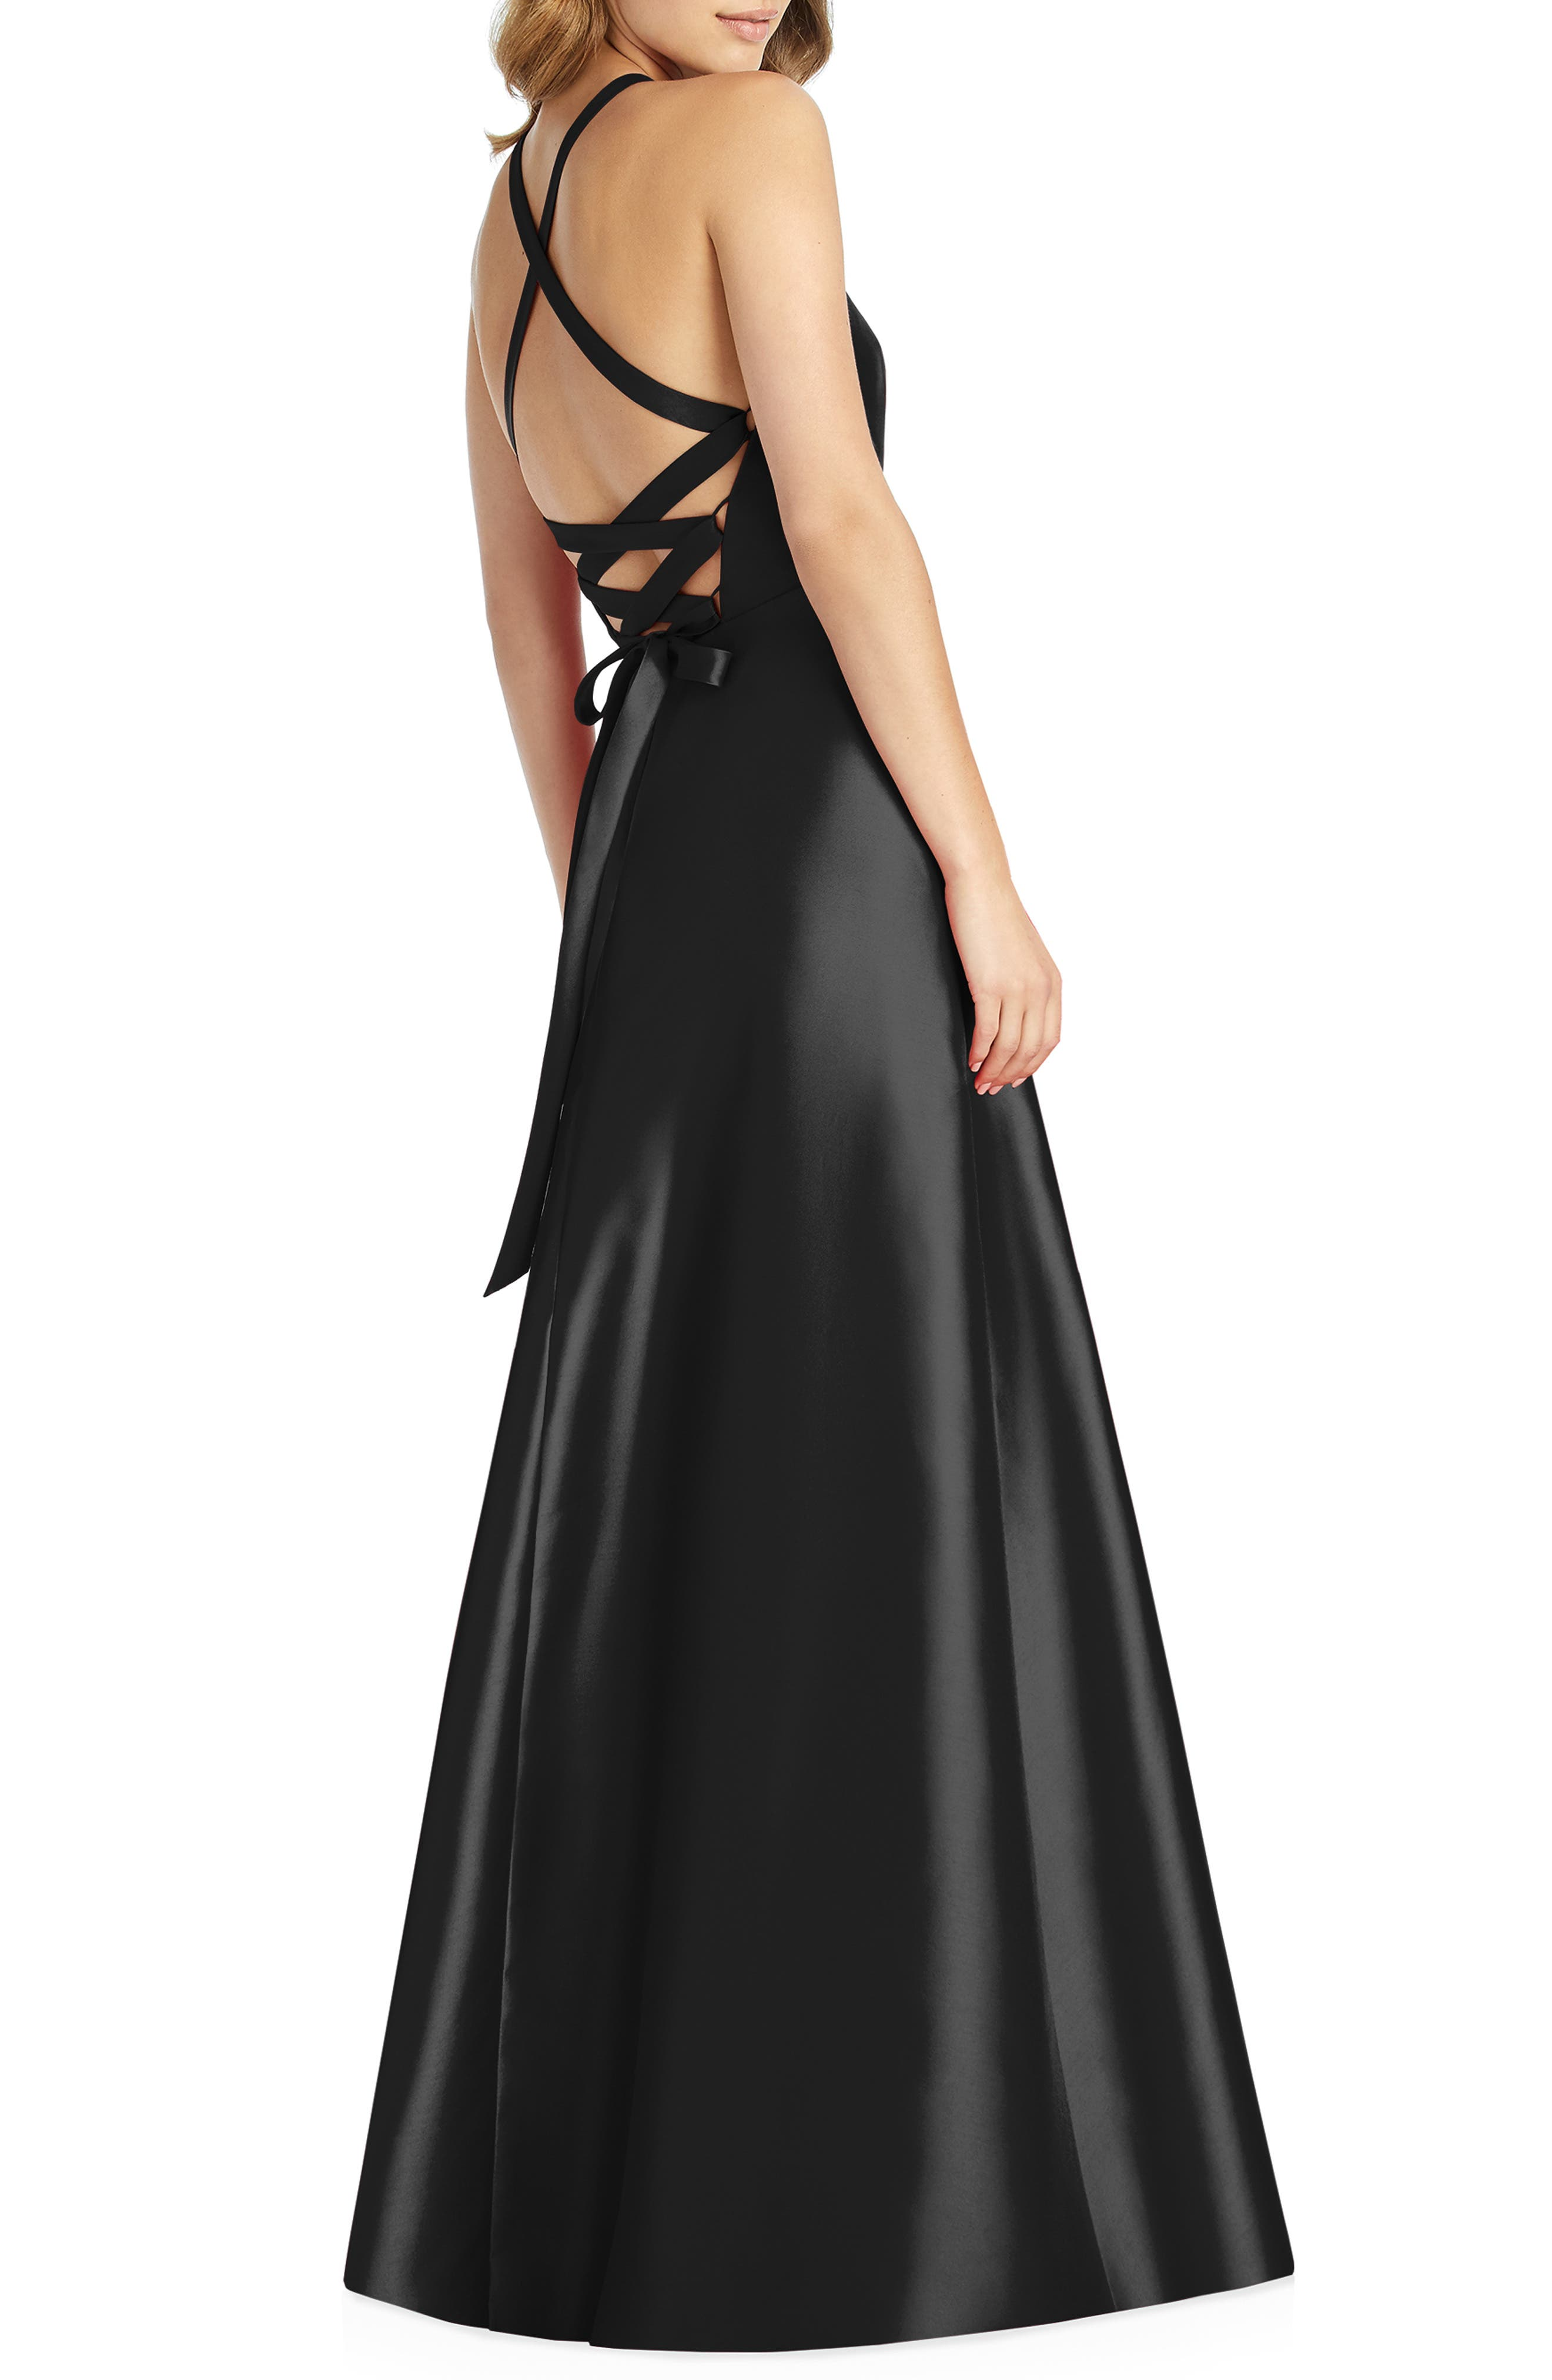 ALFRED SUNG,                             Lace-Up Back Sateen Twill Gown,                             Alternate thumbnail 2, color,                             BLACK